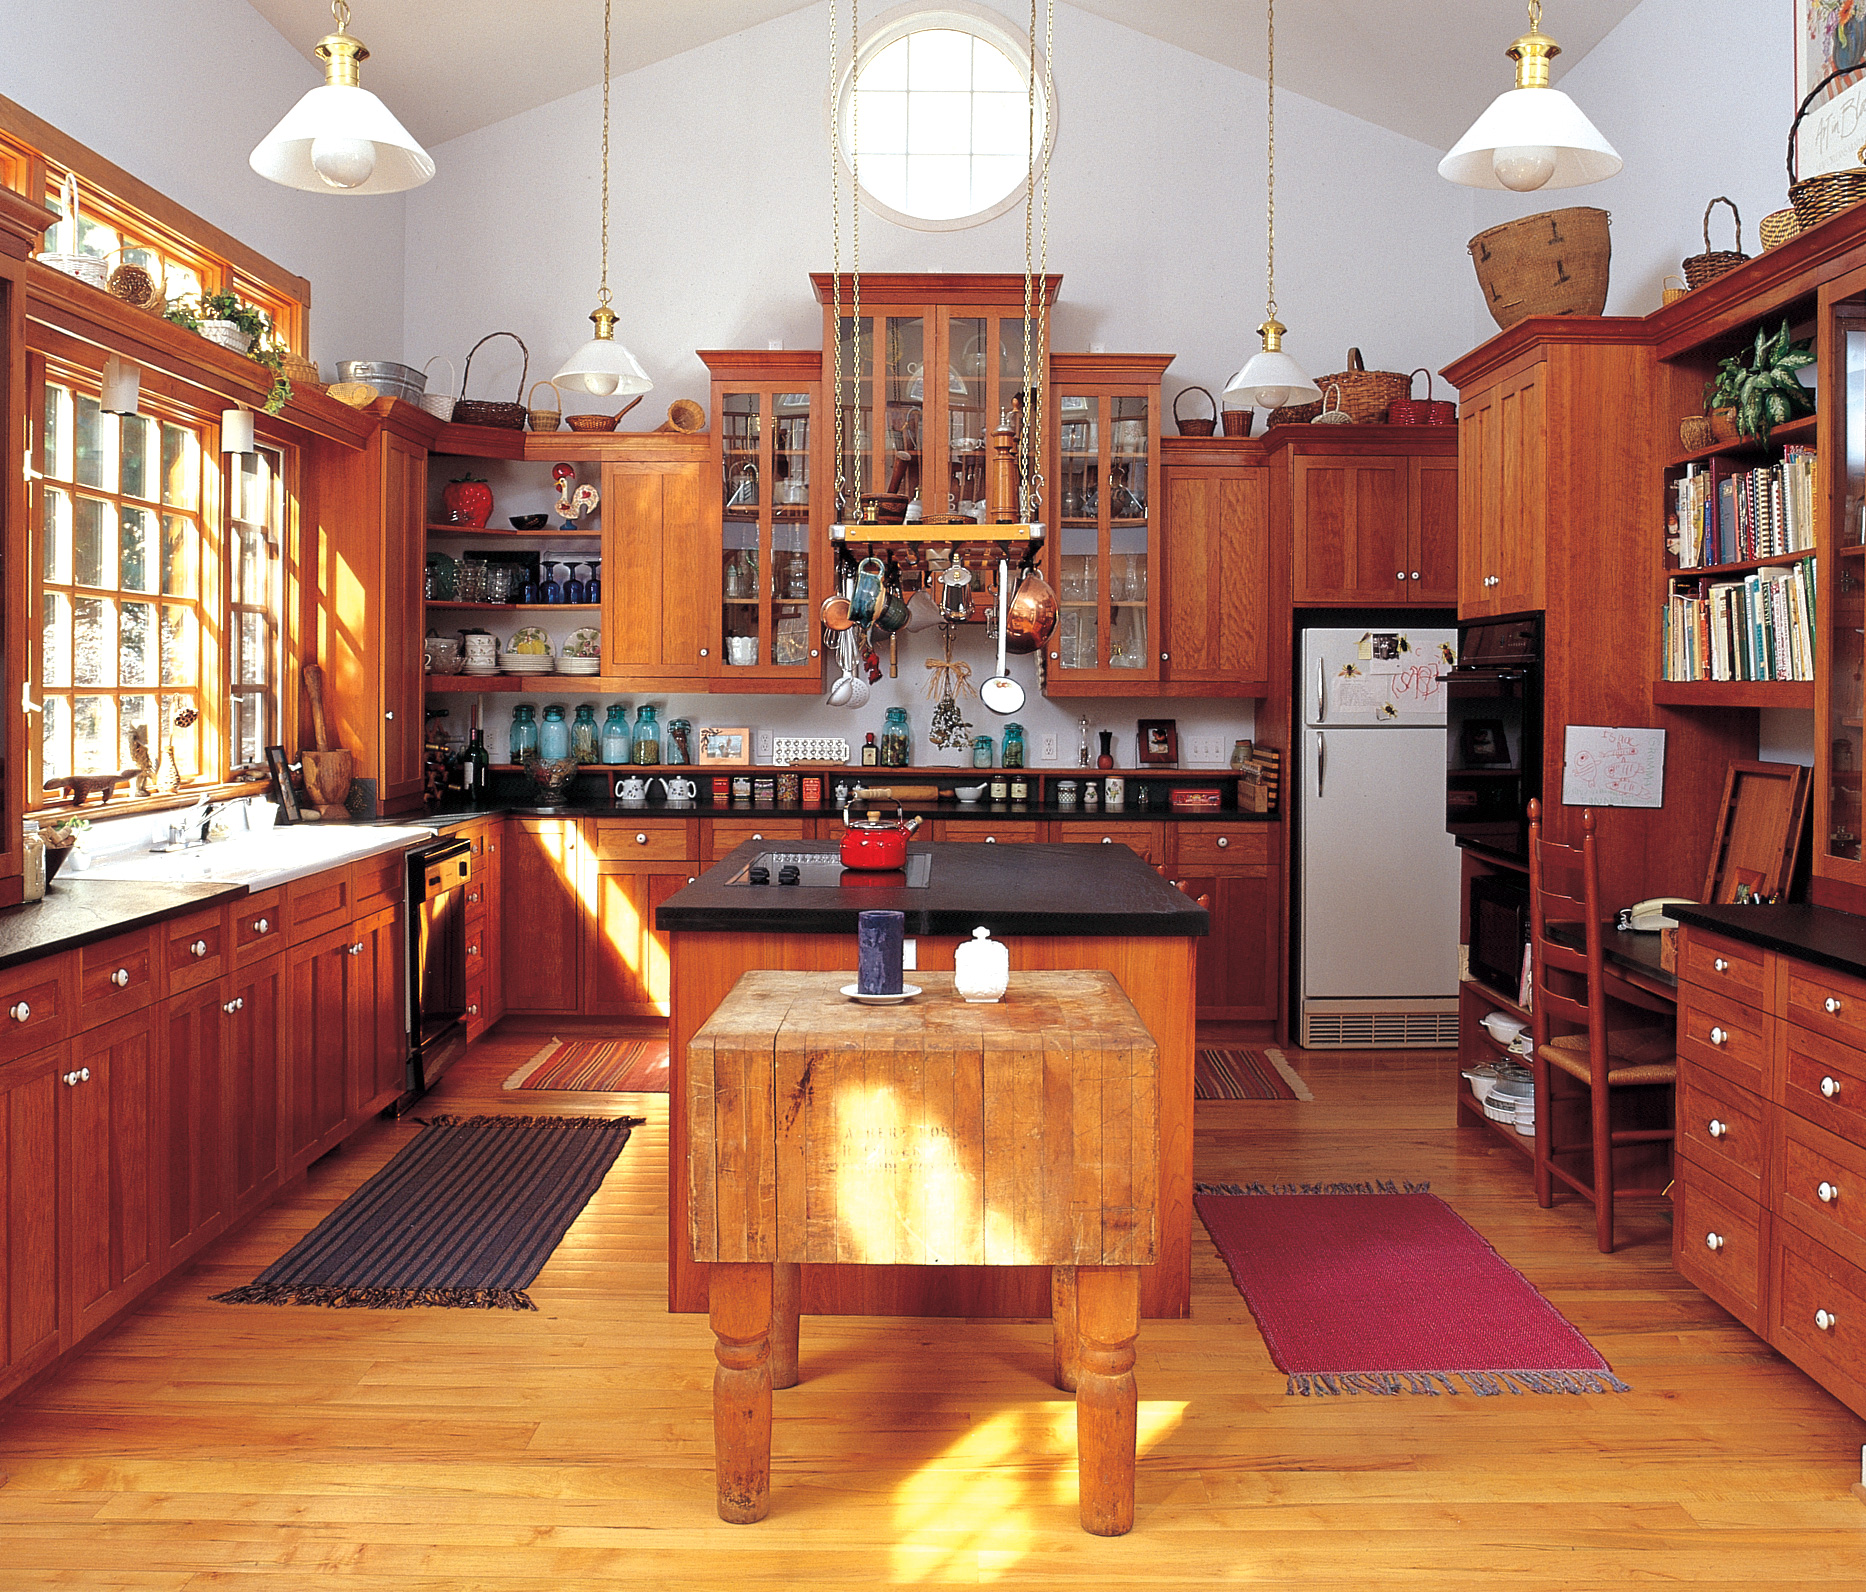 1-Shannon-Kitchen-2